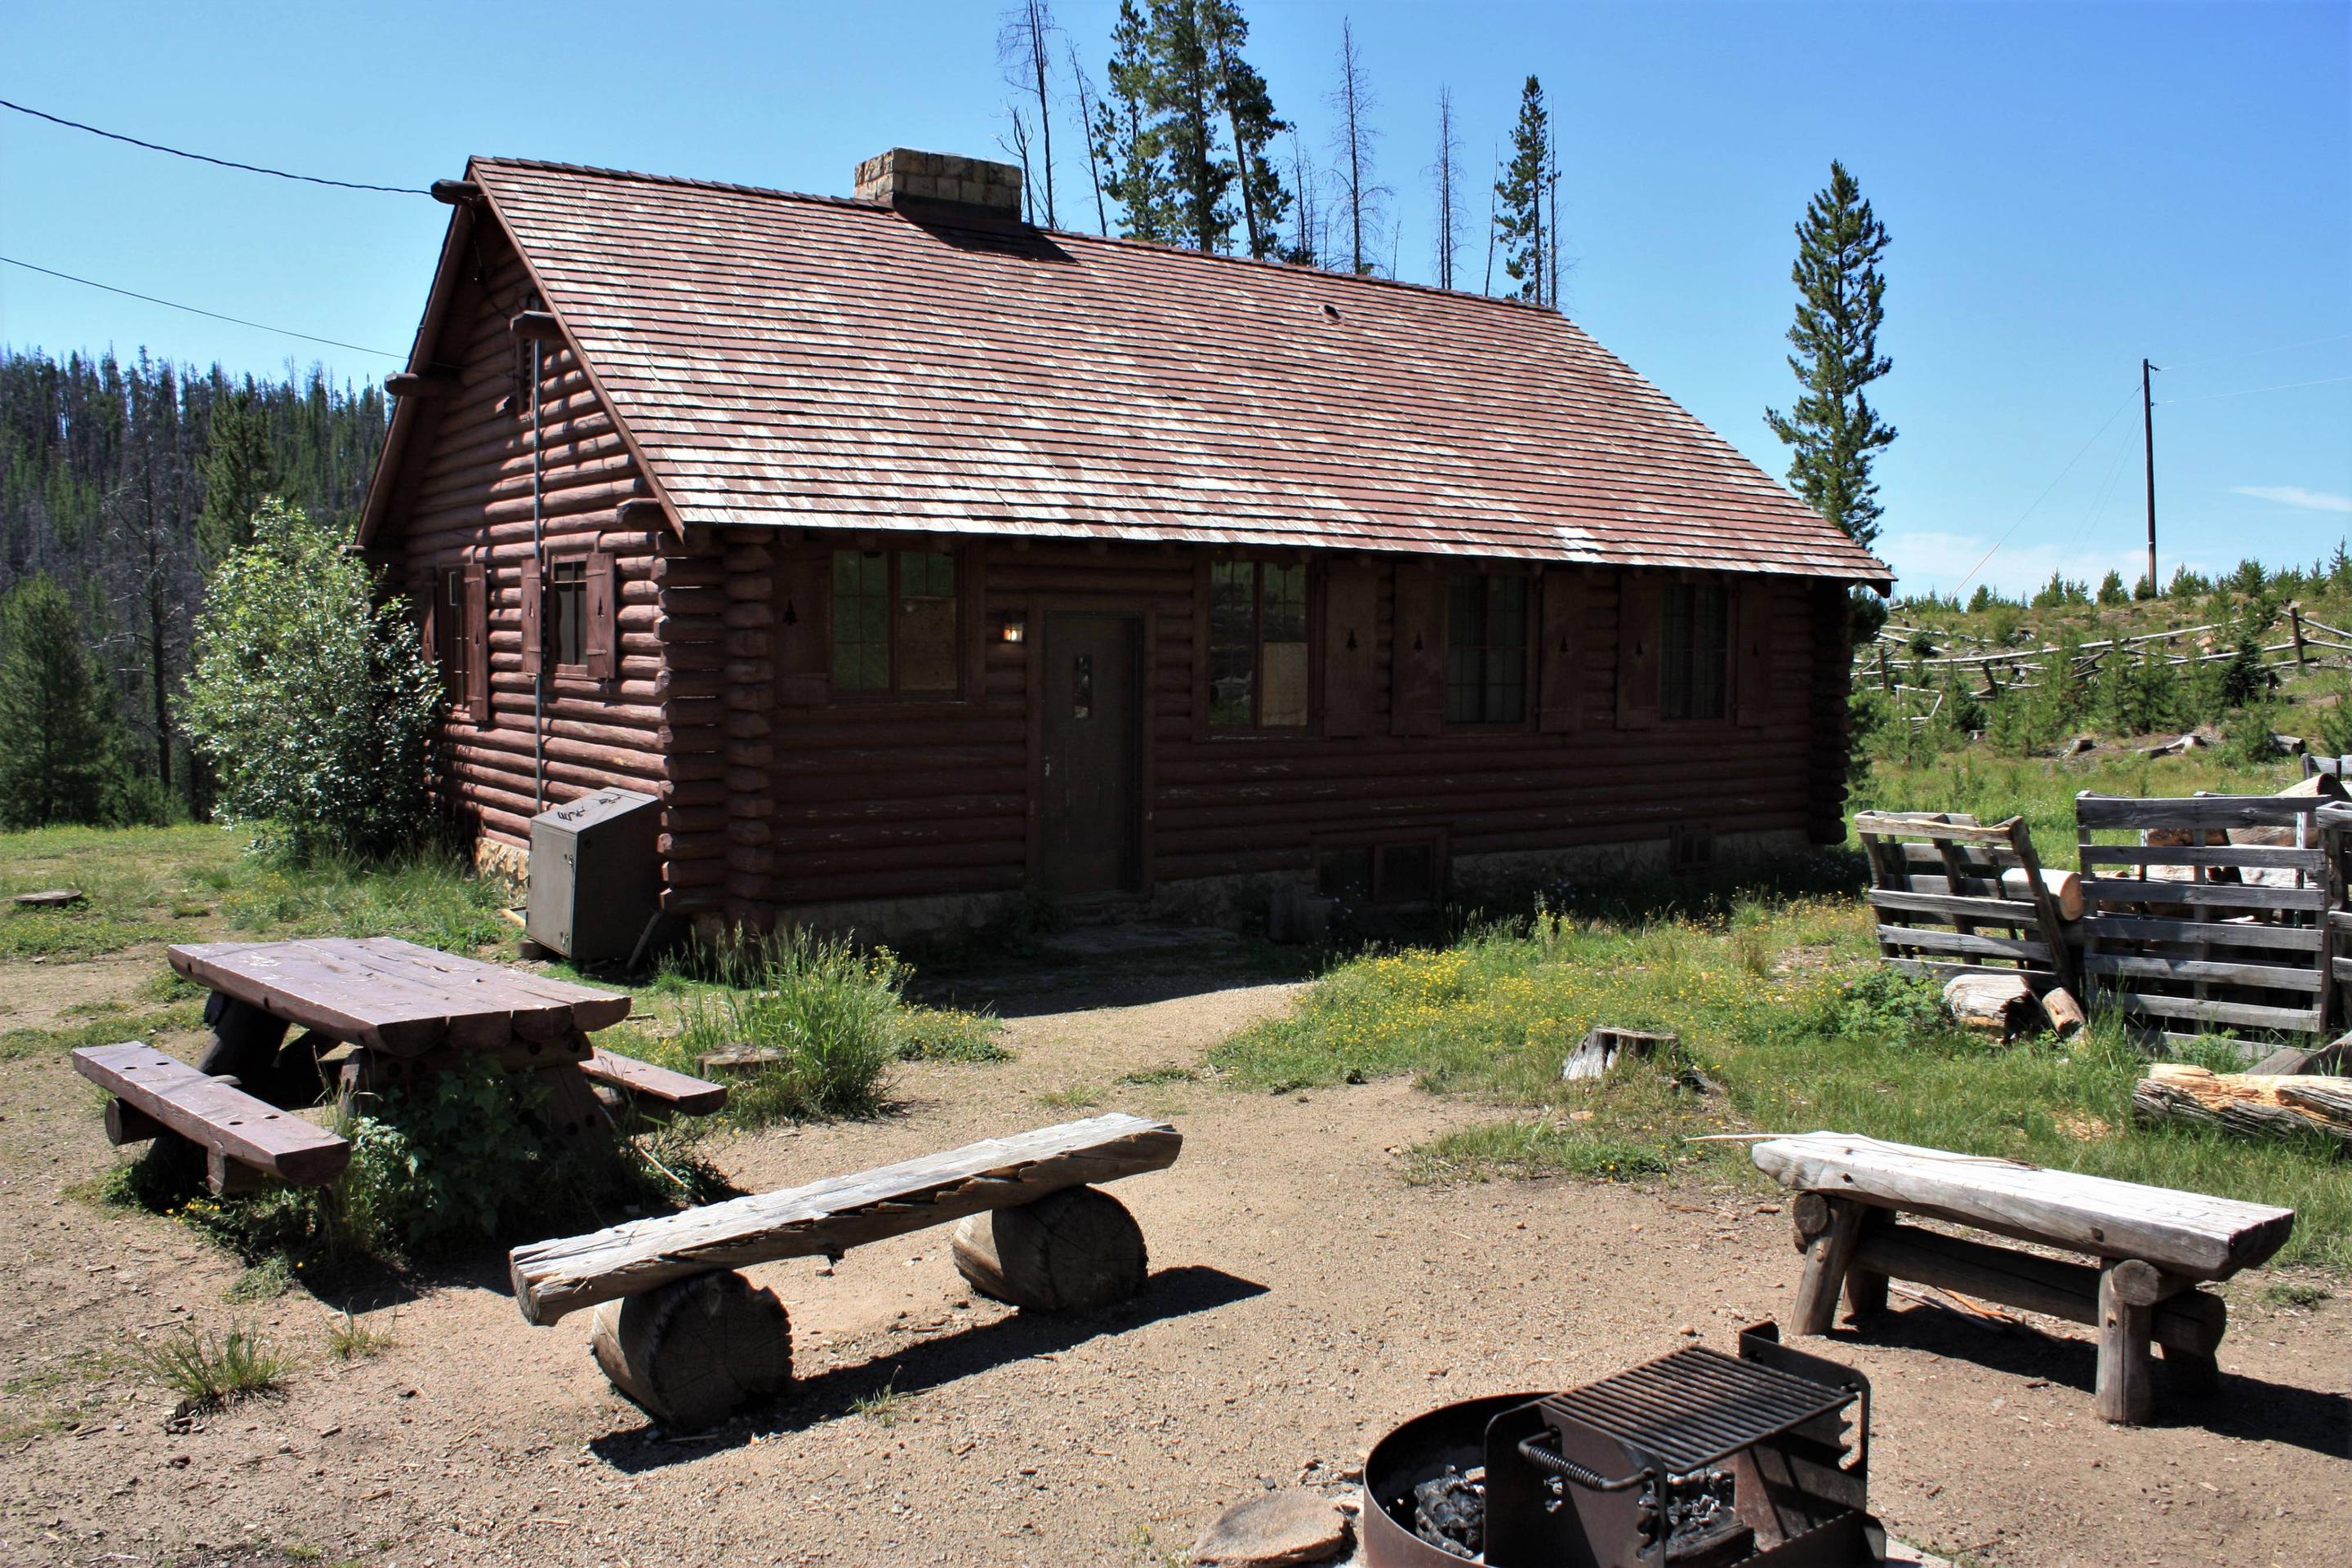 Keystone Ranger Station back entrance, picnic area, and fire pit